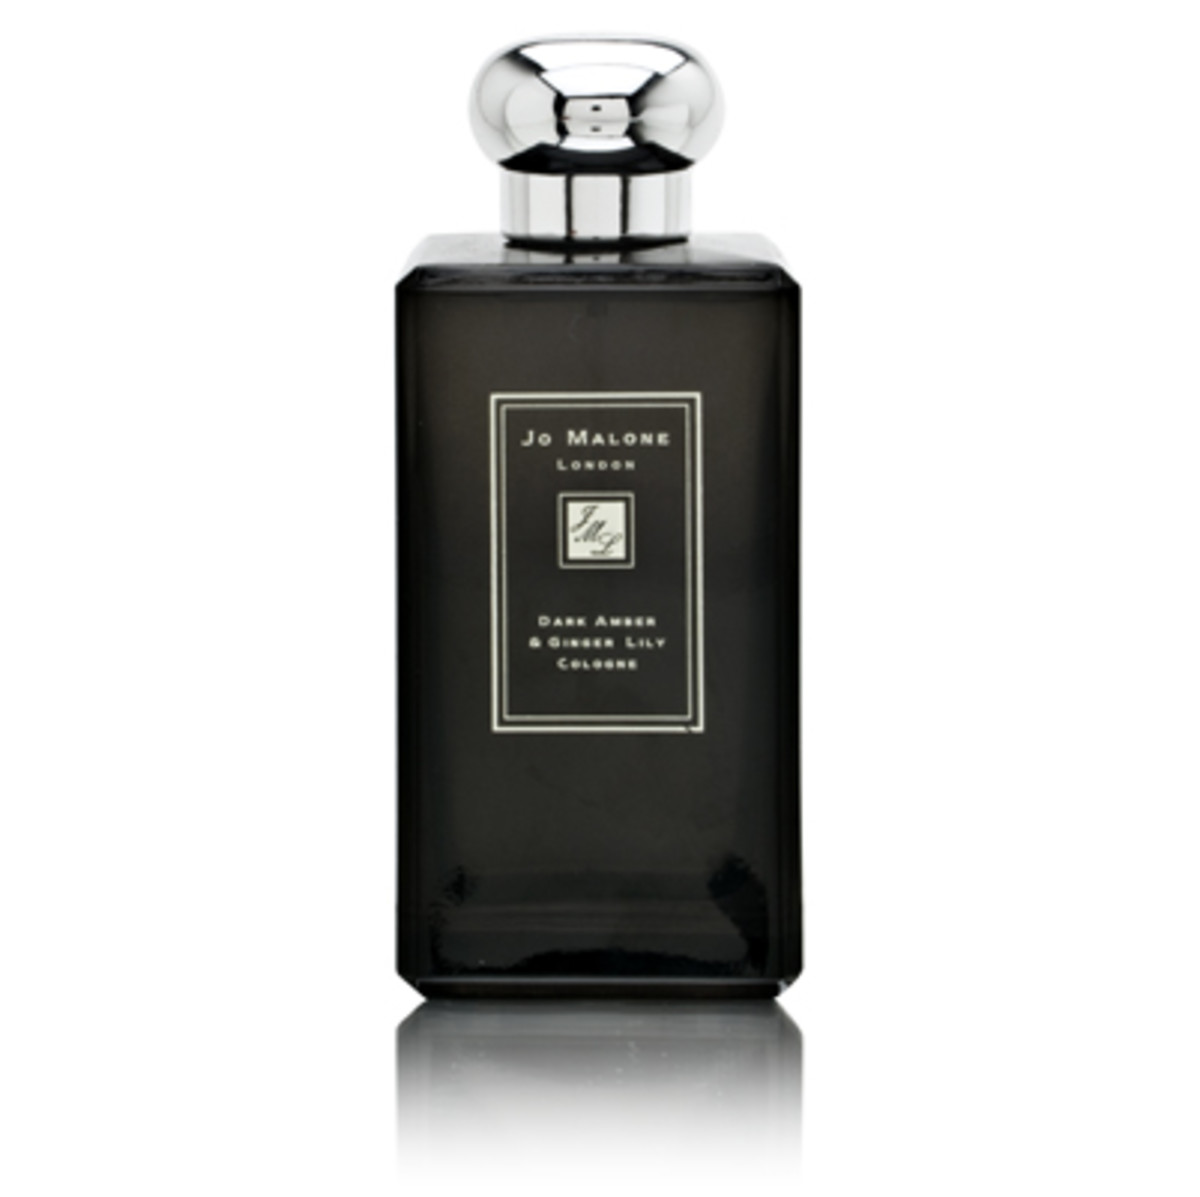 Dark Amber and Ginger Lily by Jo Malone